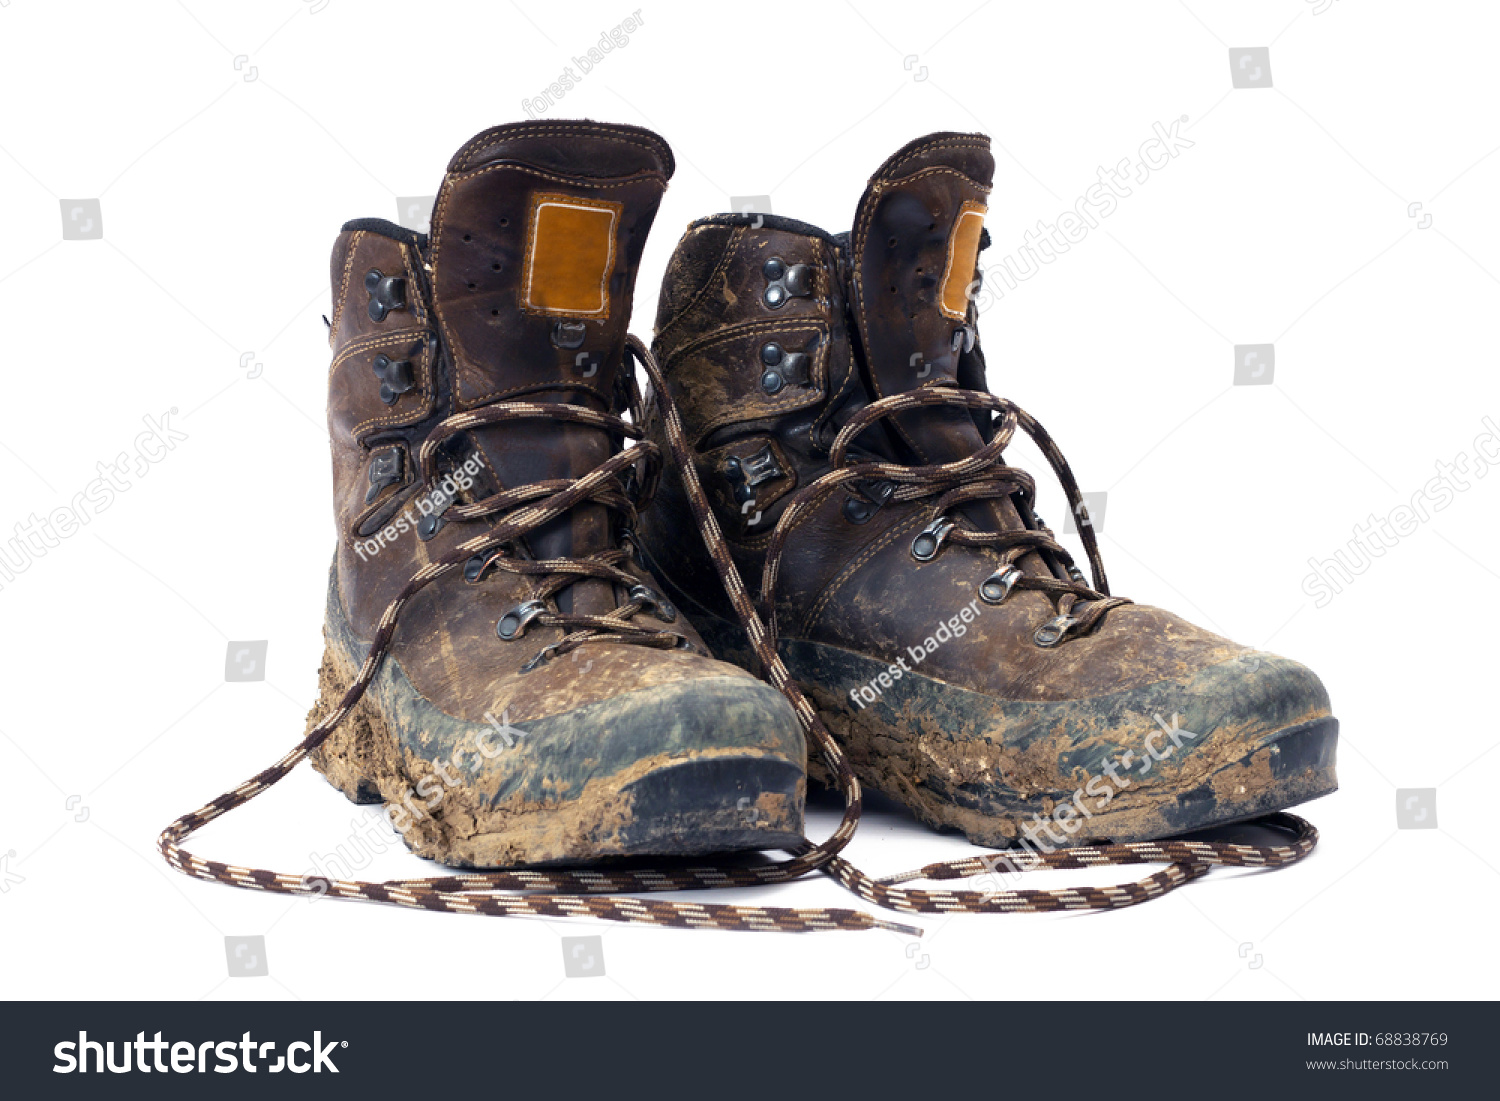 dating site muddy boots